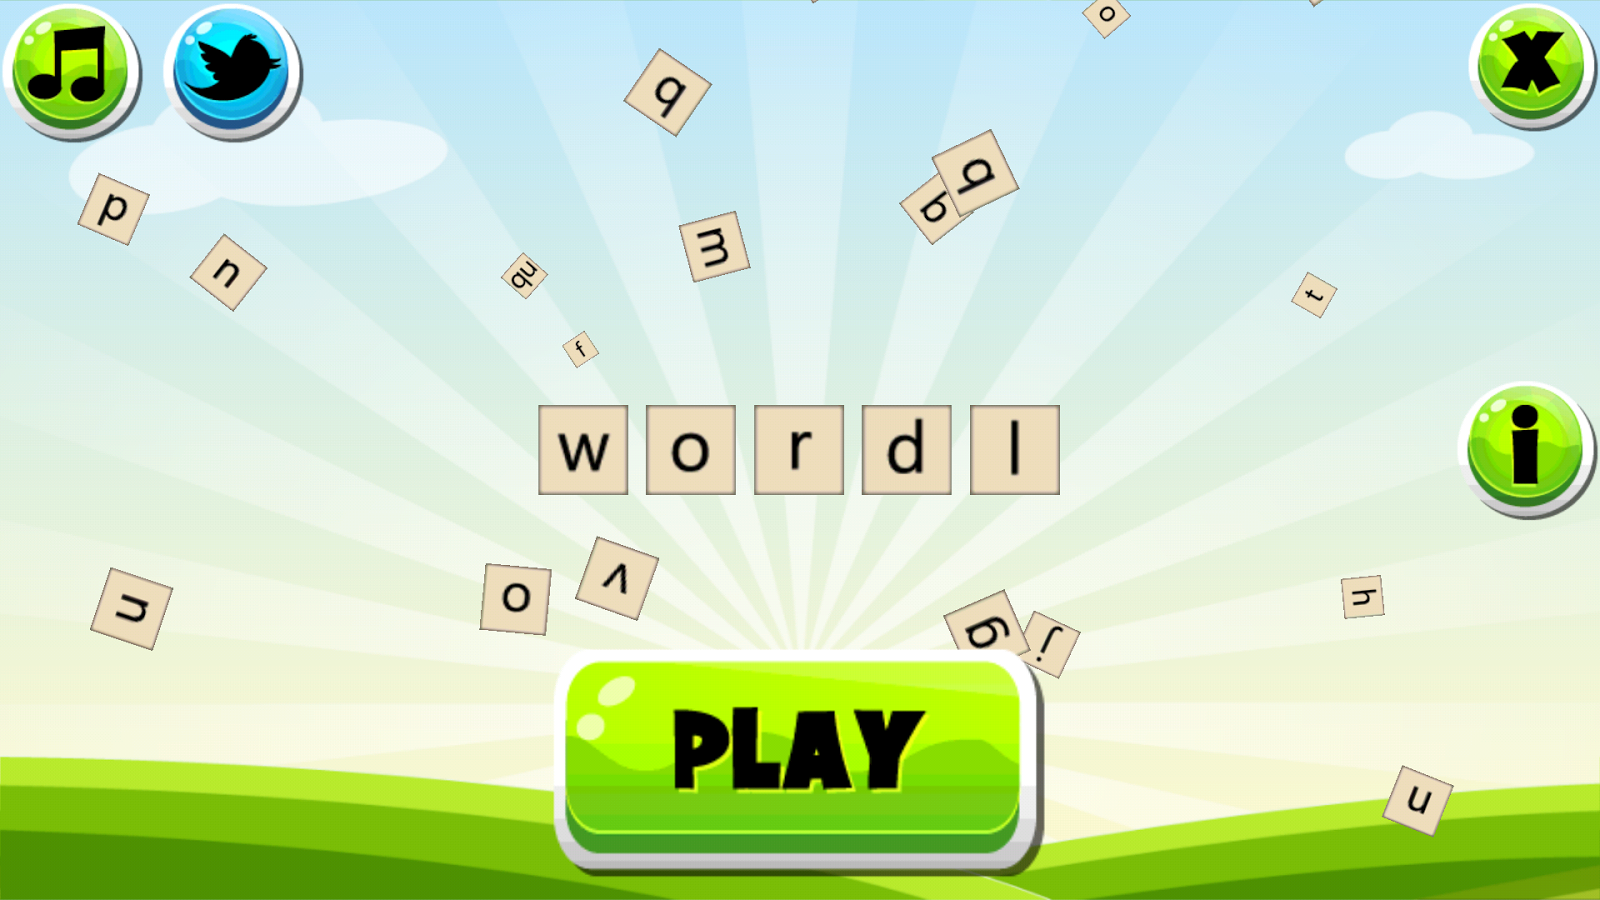 WordL-Word-Quest 21